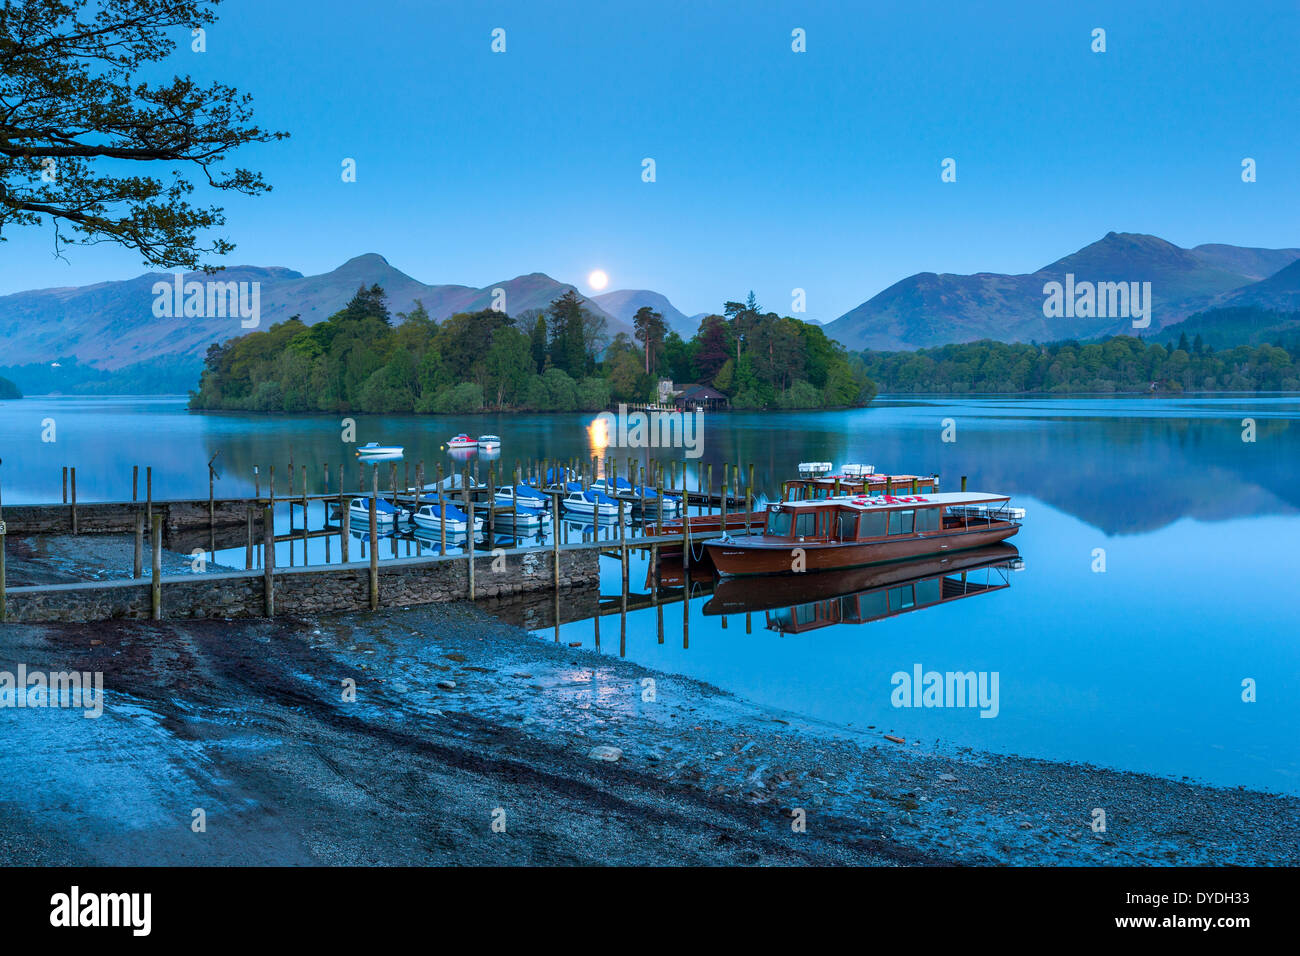 Boats on Derwentwater in the Lake District National Park. - Stock Image